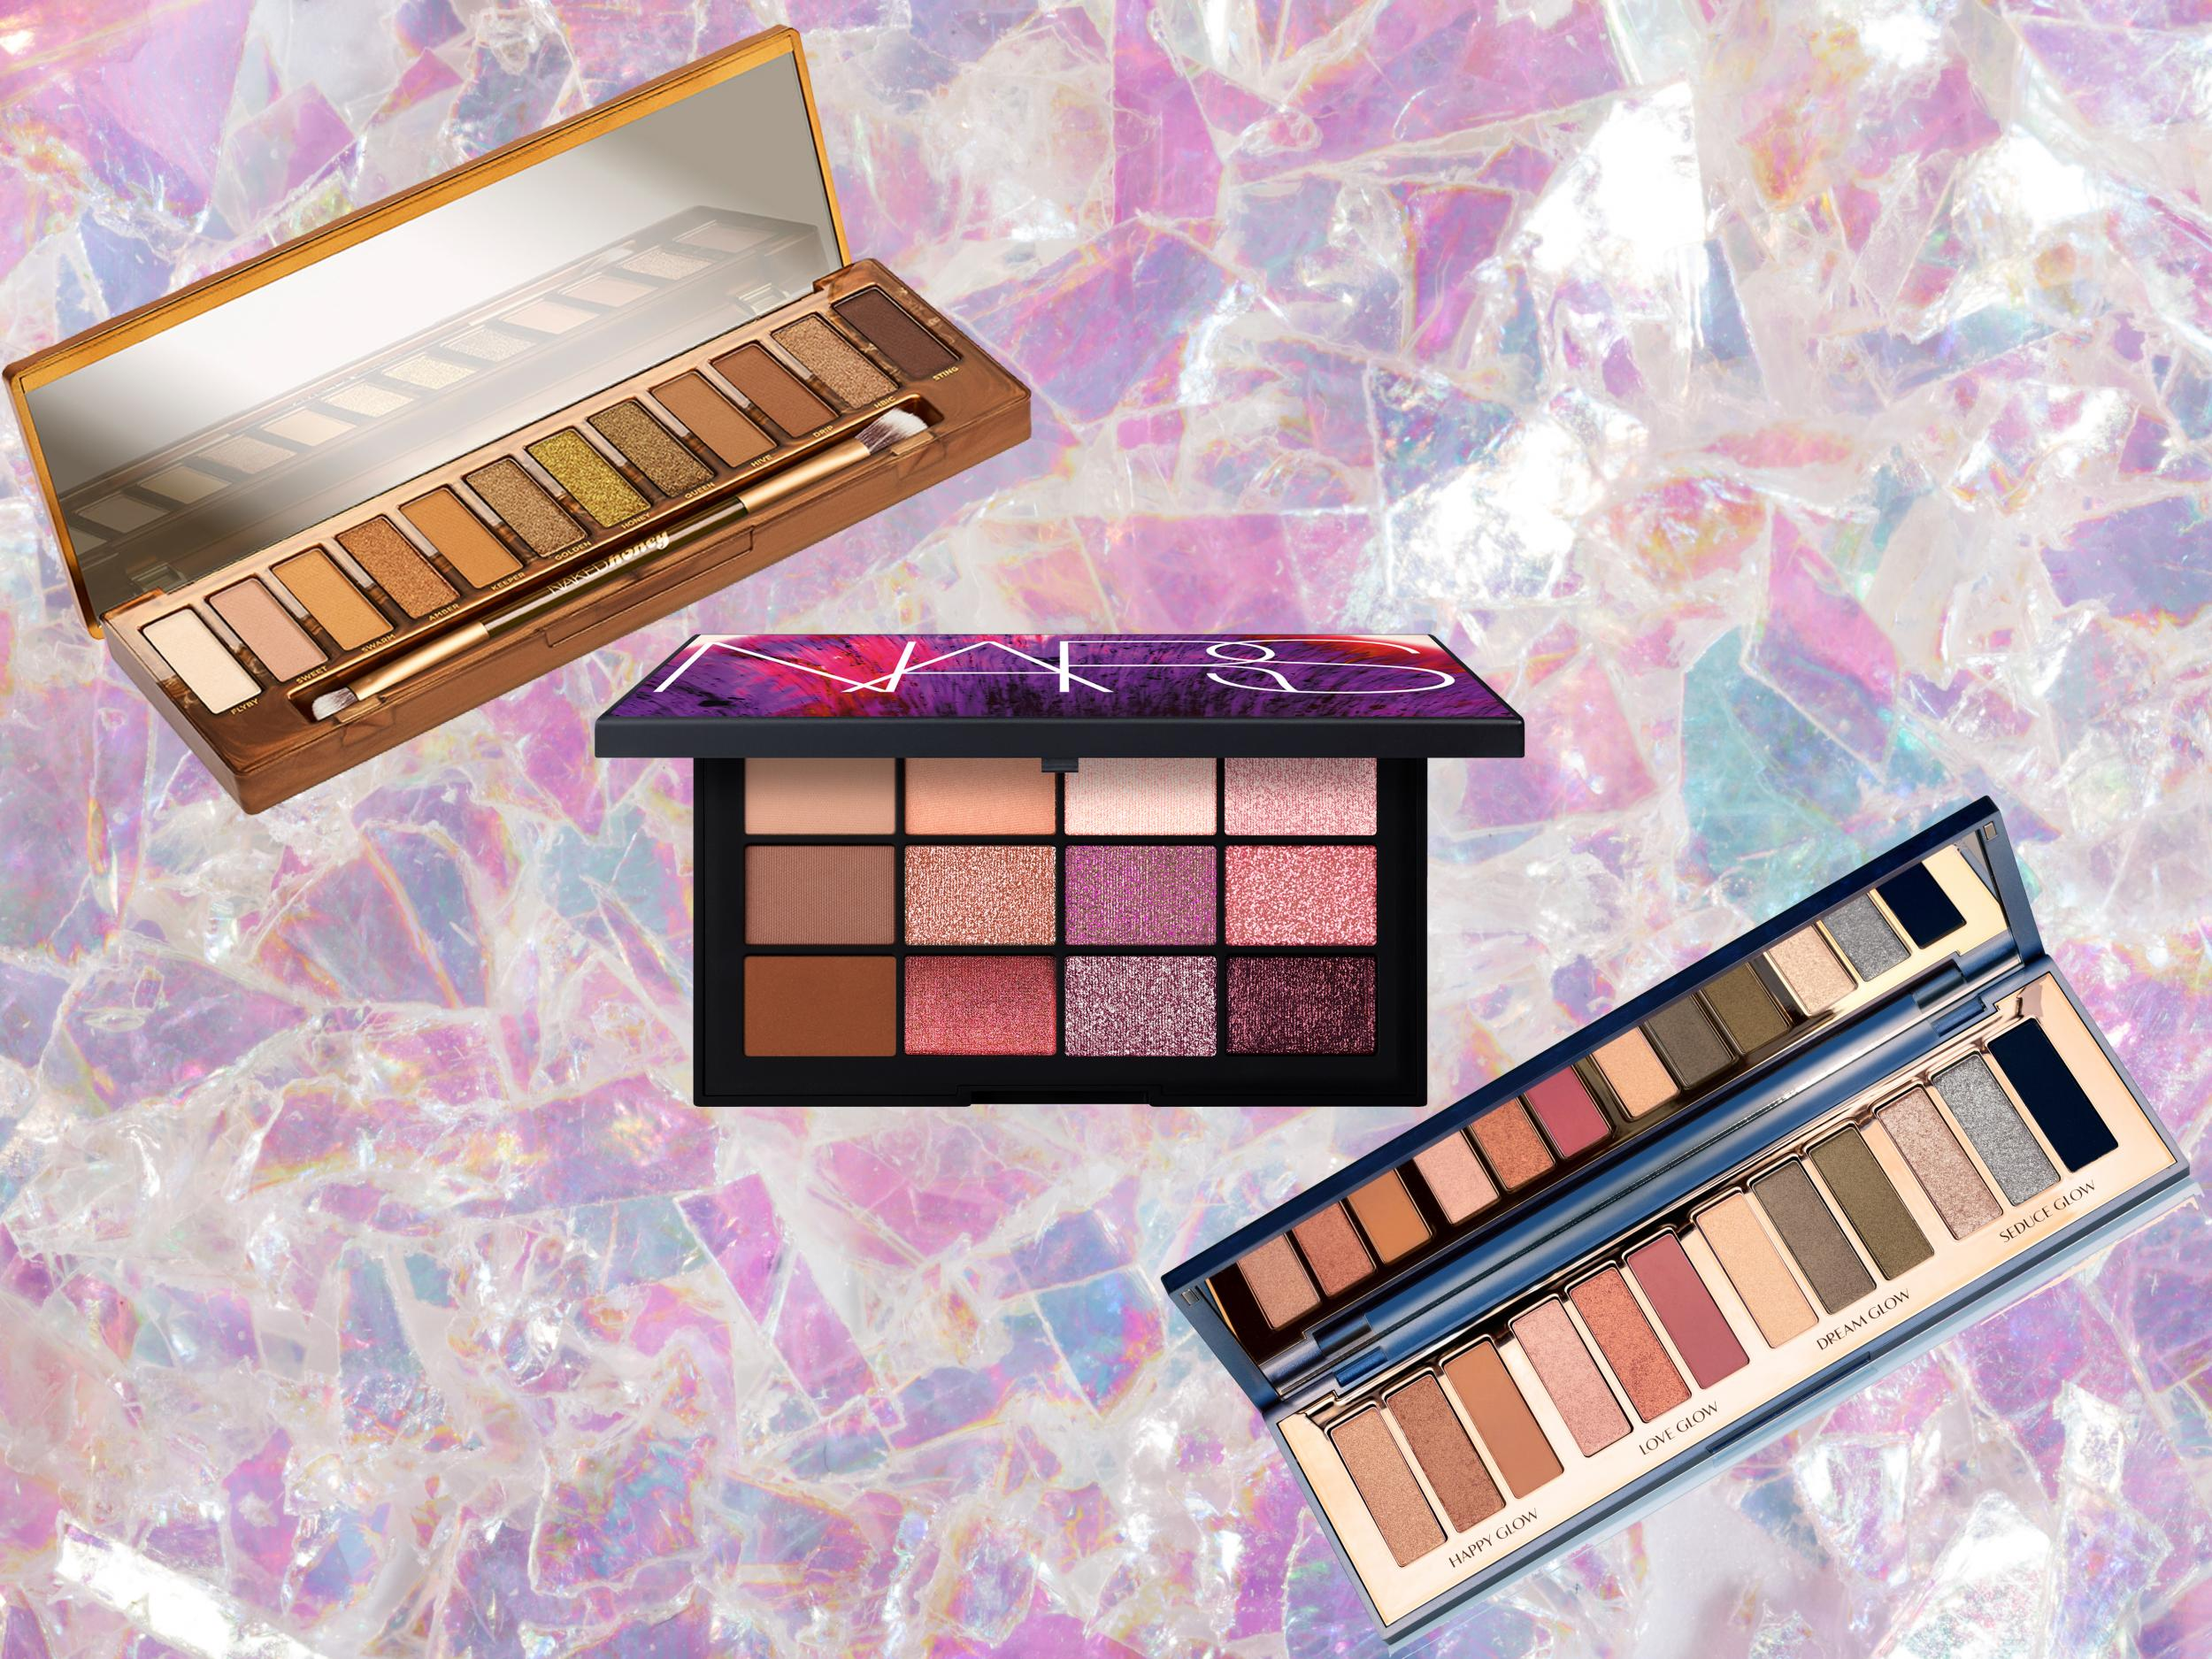 12 best eyeshadow palettes: Matte, shimmer and glitter shades that are pigmented and blendable